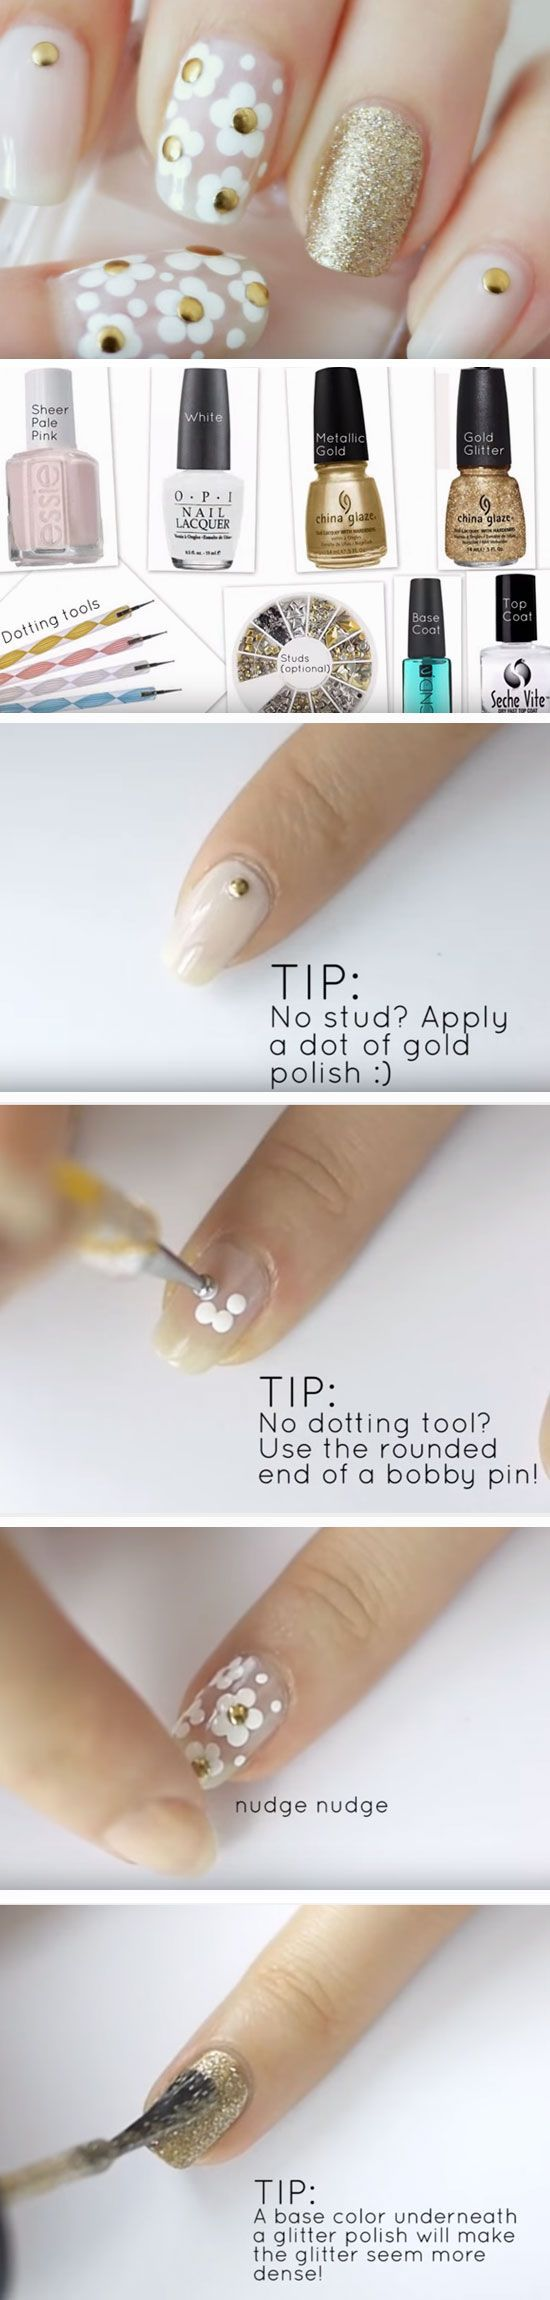 53 best nails images on Pinterest